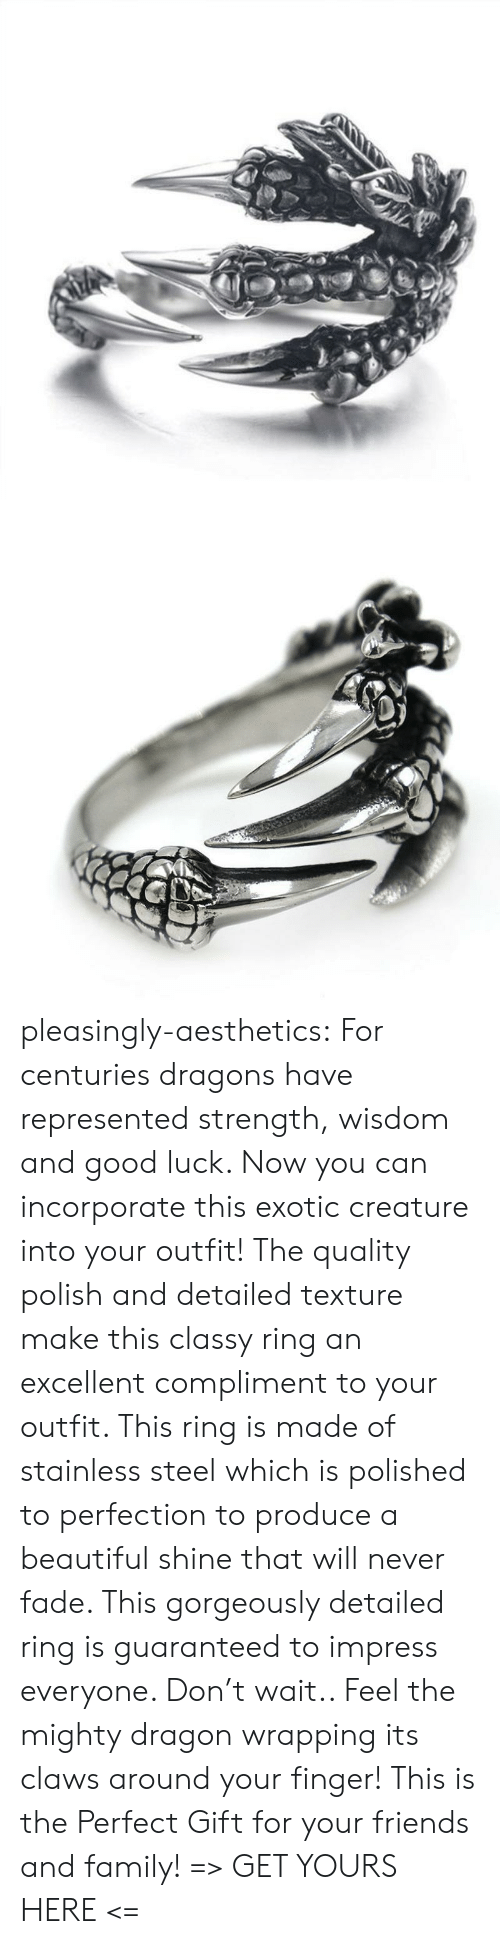 polish: pleasingly-aesthetics: For centuries dragons have represented strength, wisdom and good luck. Now you can incorporate this exotic creature into your outfit! The quality polish and detailed texture make this classy ring an excellent compliment to your outfit. This ring is made of stainless steel which is polished to perfection to produce a beautiful shine that will never fade.  This gorgeously detailed ring is guaranteed to impress everyone. Don't wait.. Feel the mighty dragon wrapping its claws around your finger! This is the Perfect Gift for your friends and family! => GET YOURS HERE <=